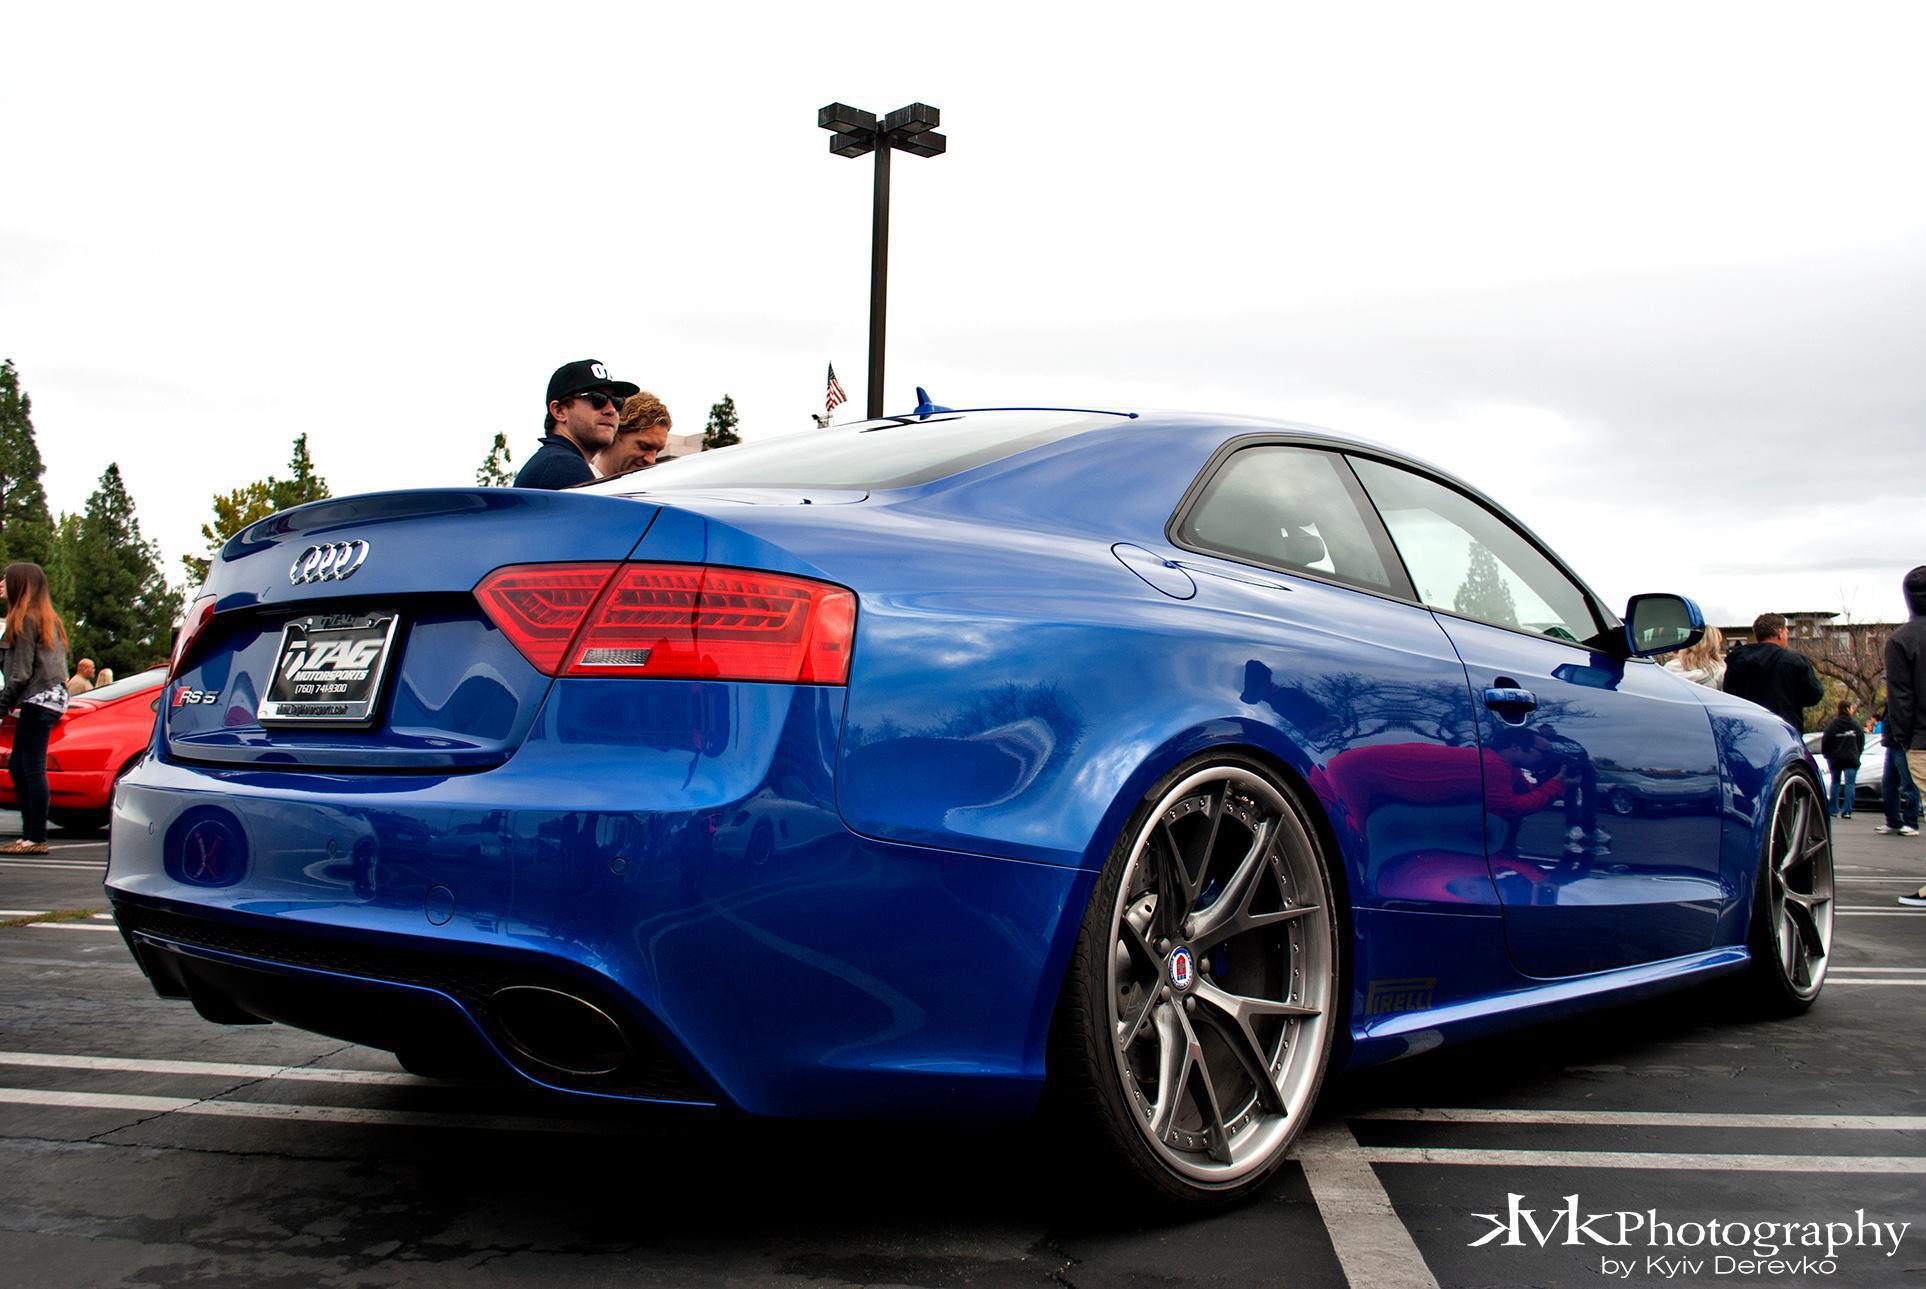 Audi RS5 image #3